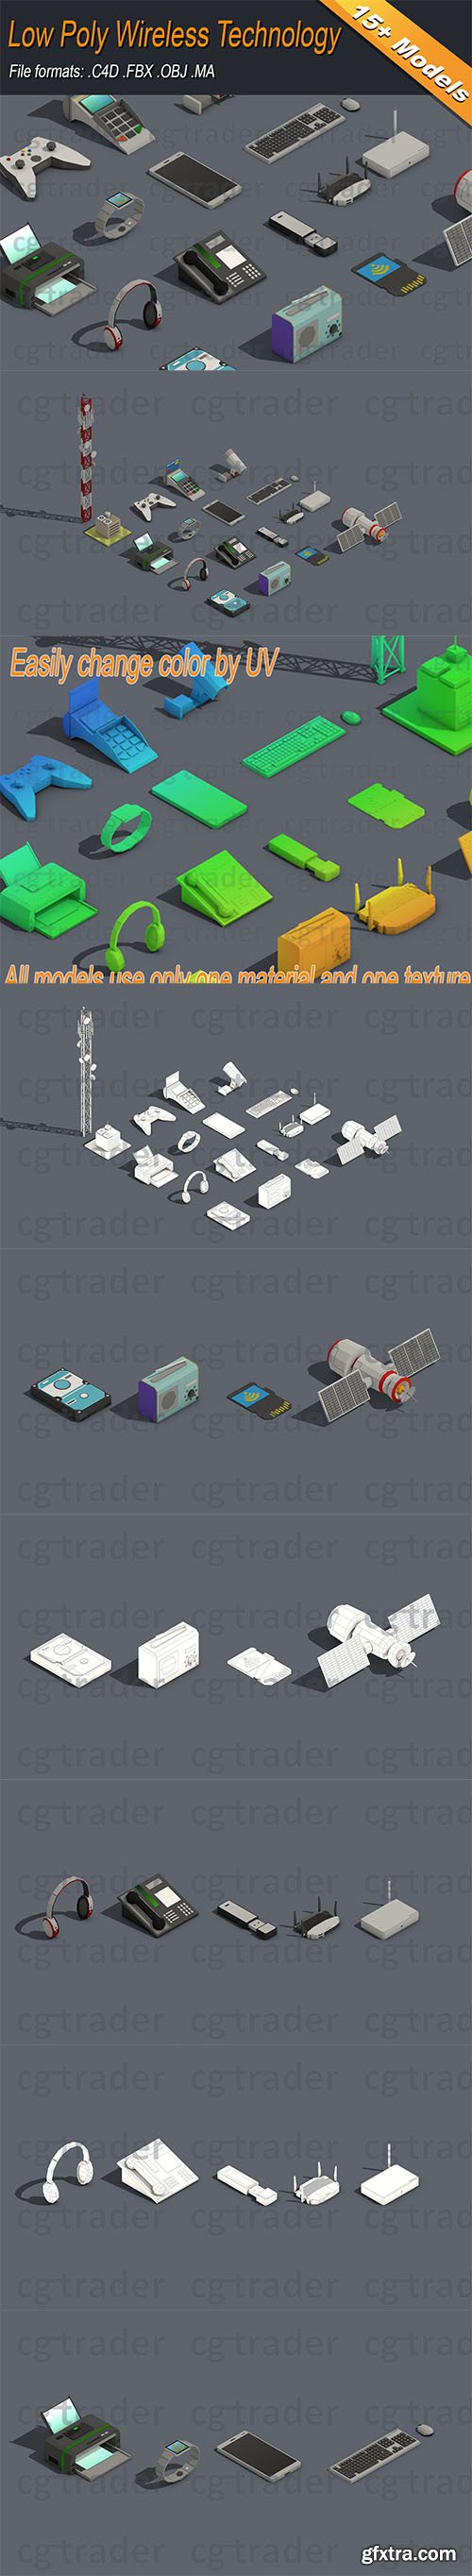 Cgtrader - Low Poly Wireless Technology Isometric Low-poly 3D model